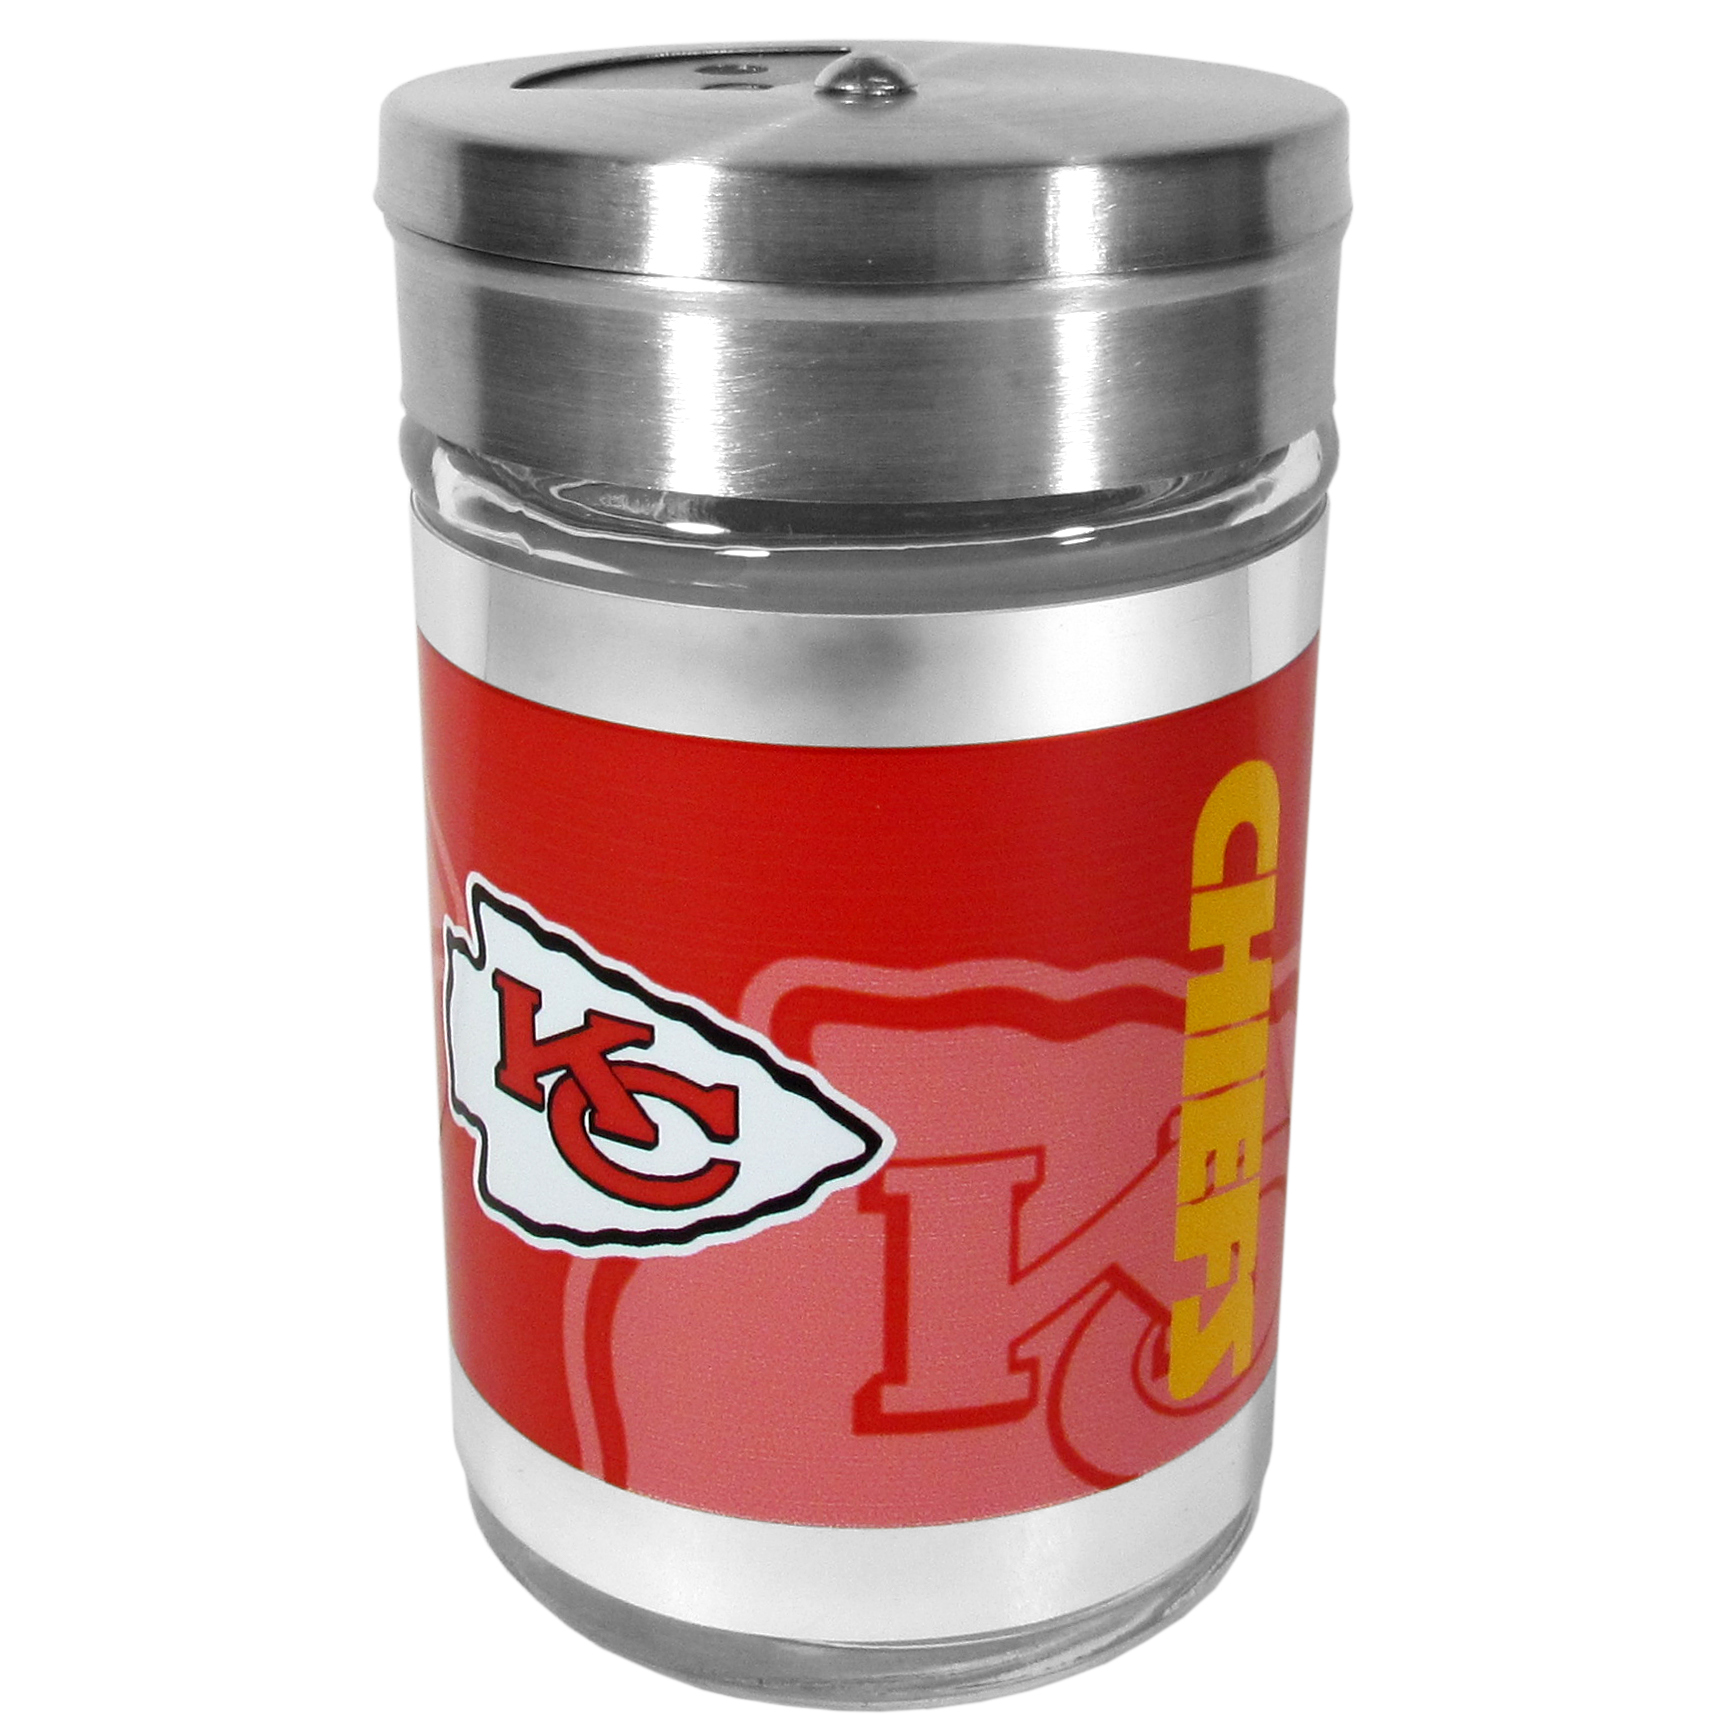 Kansas City Chiefs Tailgater Season Shakers - Spice it up with our Kansas City Chiefs tailgater season shakers! This compact shaker is 2 inch tall with a twist top that closes off the holes at the top making it perfect for travel preventing those messy spills. The shaker has wide holes perfect for keeping your pepper seeds or cheese toppings. The bright team graphics will make you the envy of the other fans while you are grilling up your tailgating goodies.